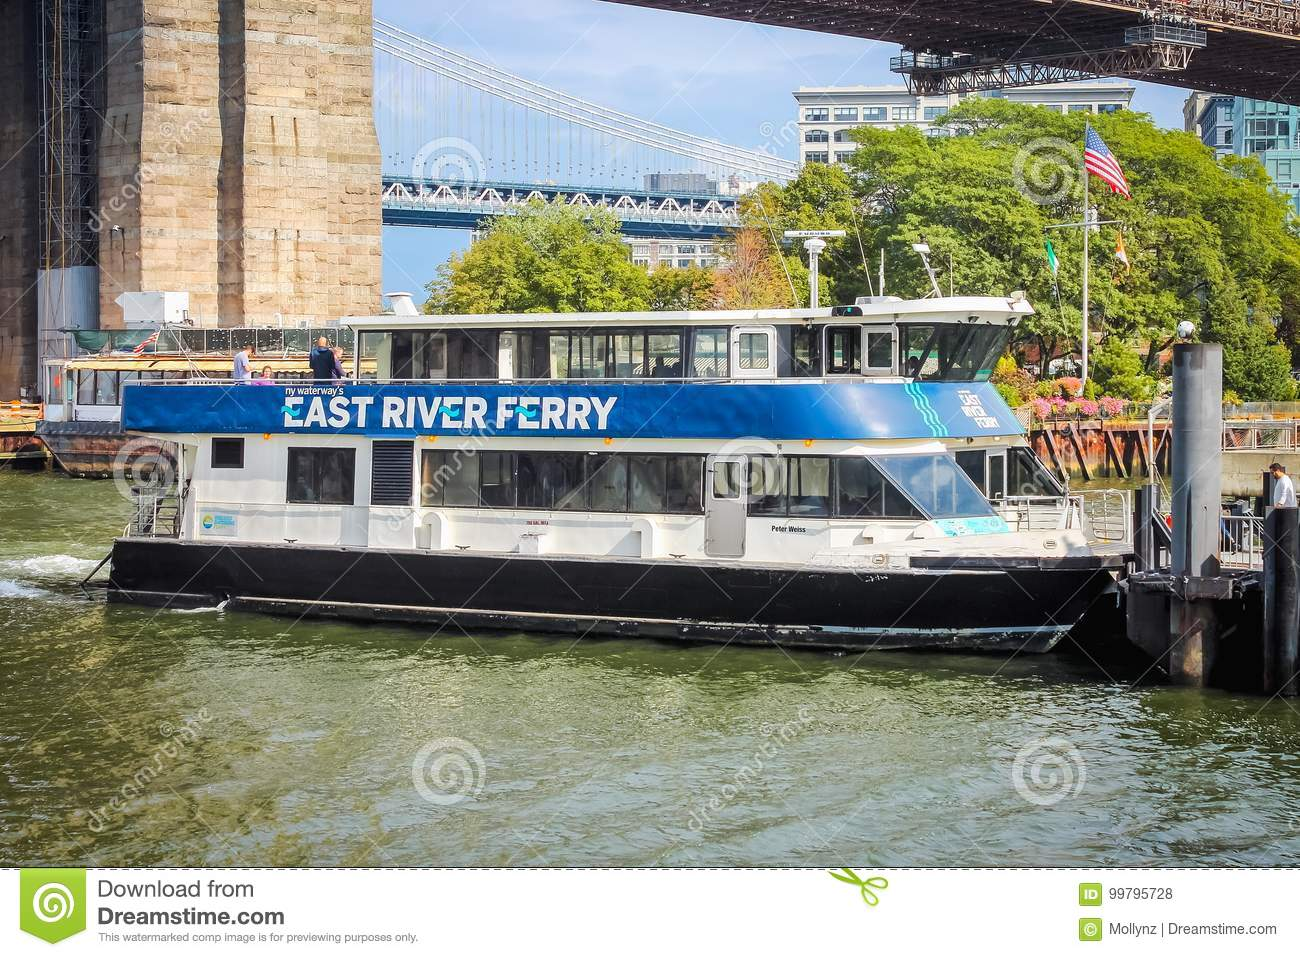 Close Up Image Of The East River Ferry Which Transitioned To